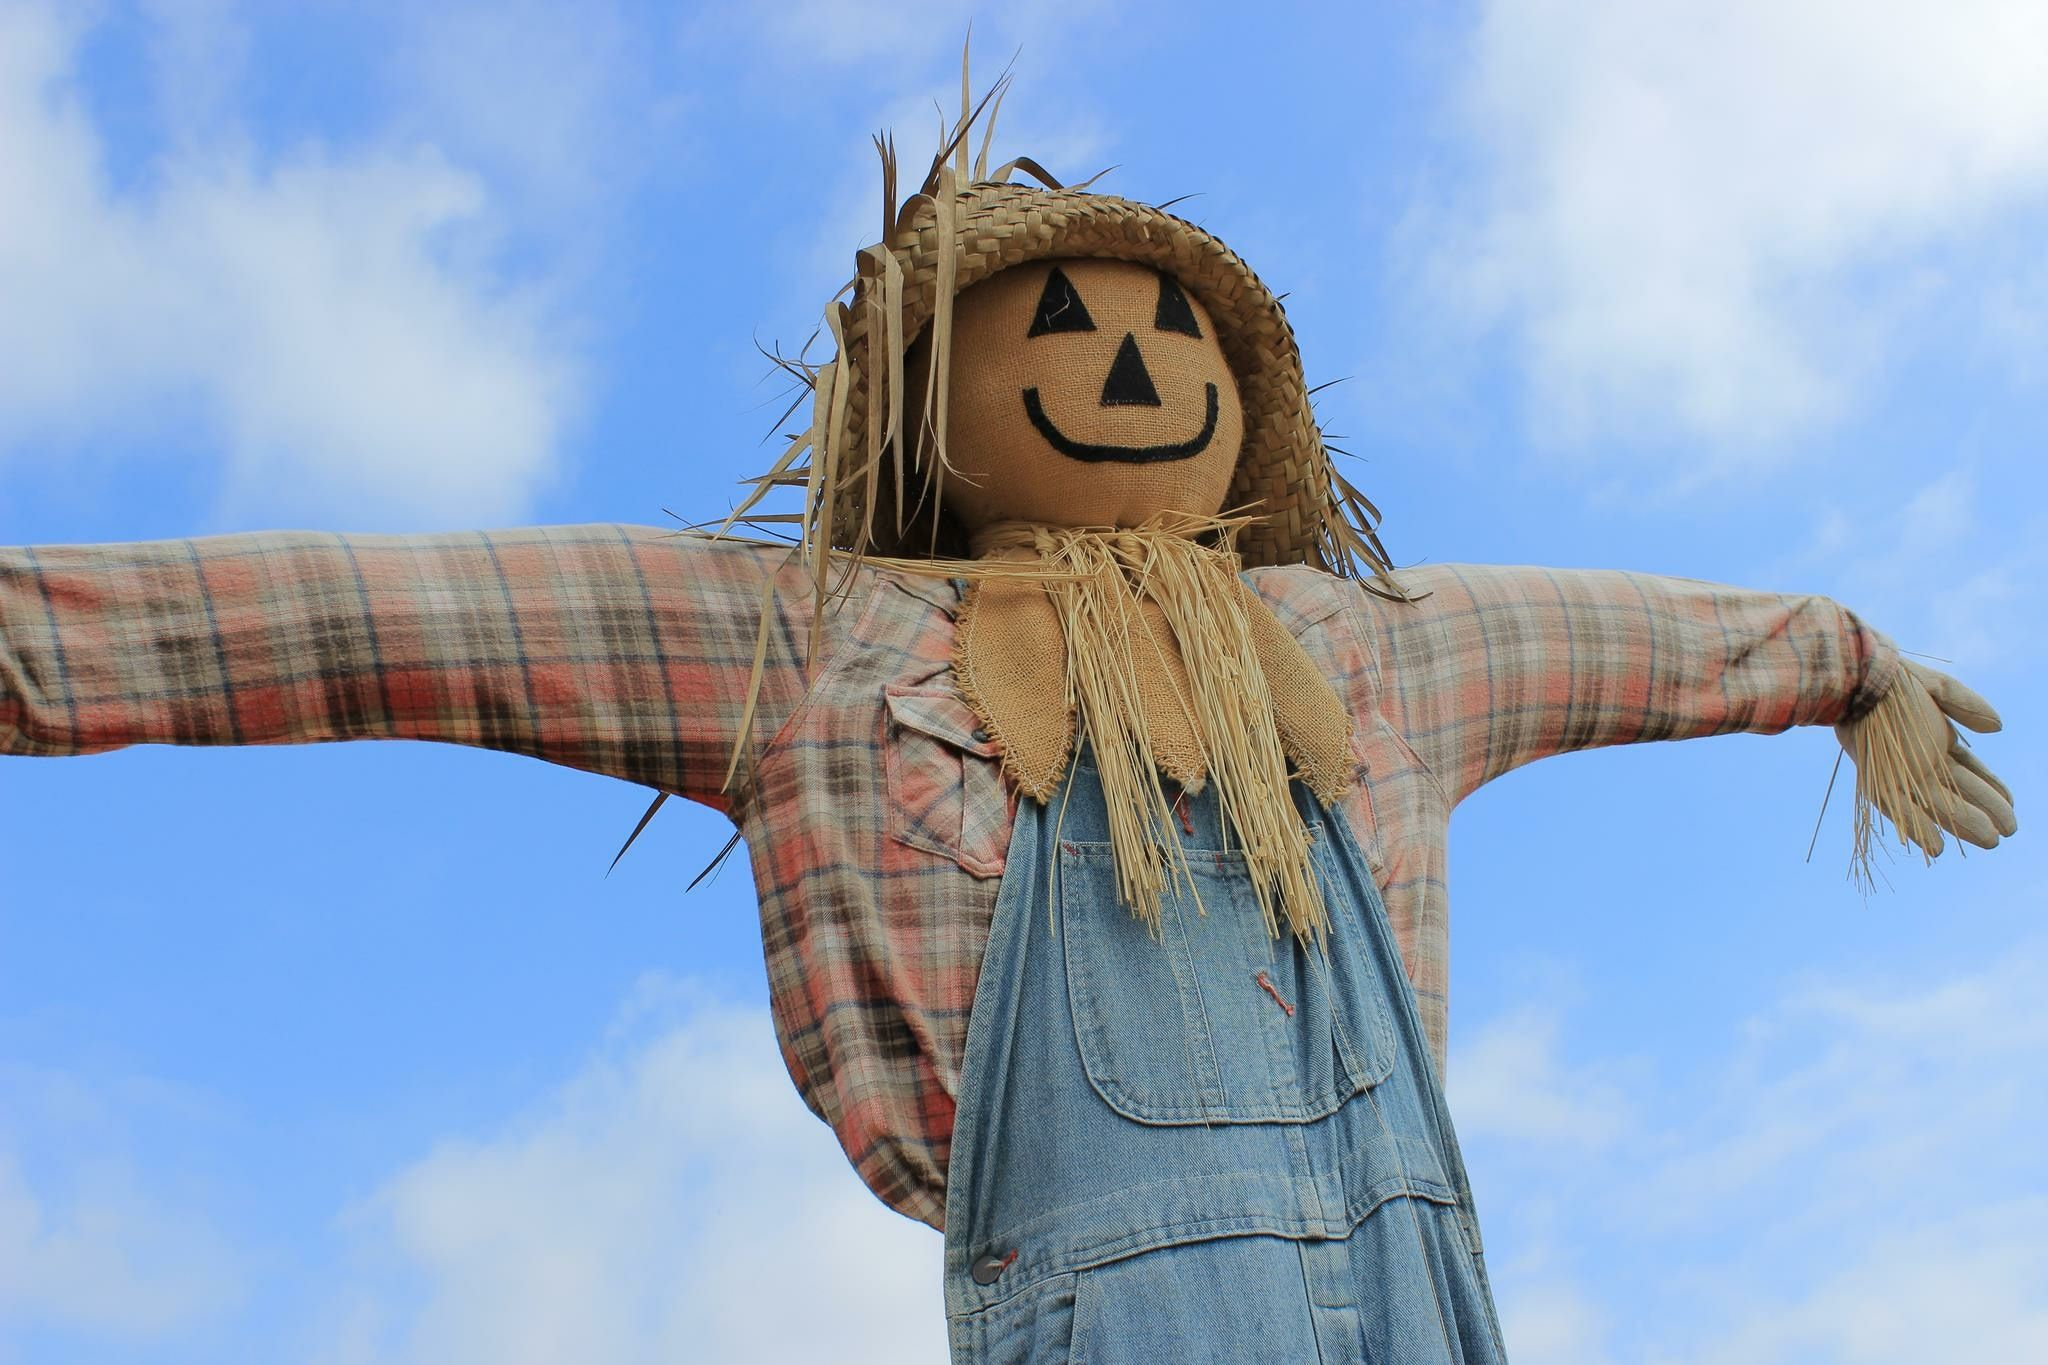 Name:  low-angle-view-scarecrow-against-cloudy-sky-562838541-5aaf18adfa6bcc00360a609c.jpg Views: 138 Size:  288.4 KB